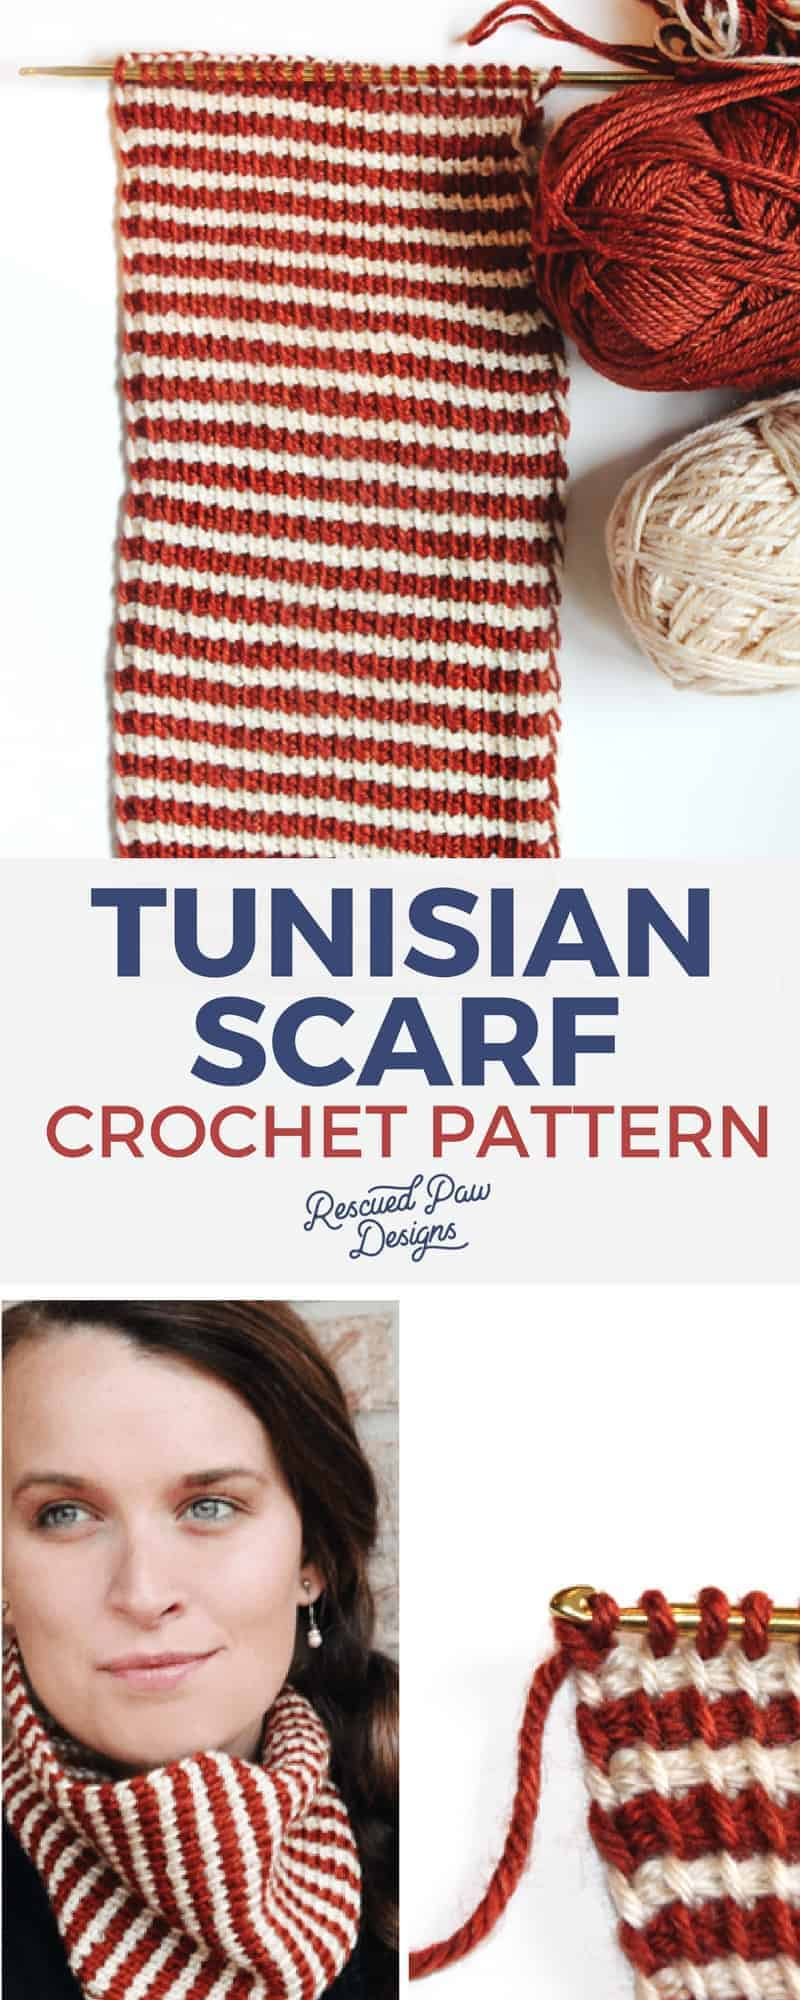 Tunisian Crochet Pattern from Rescued Paw Designs